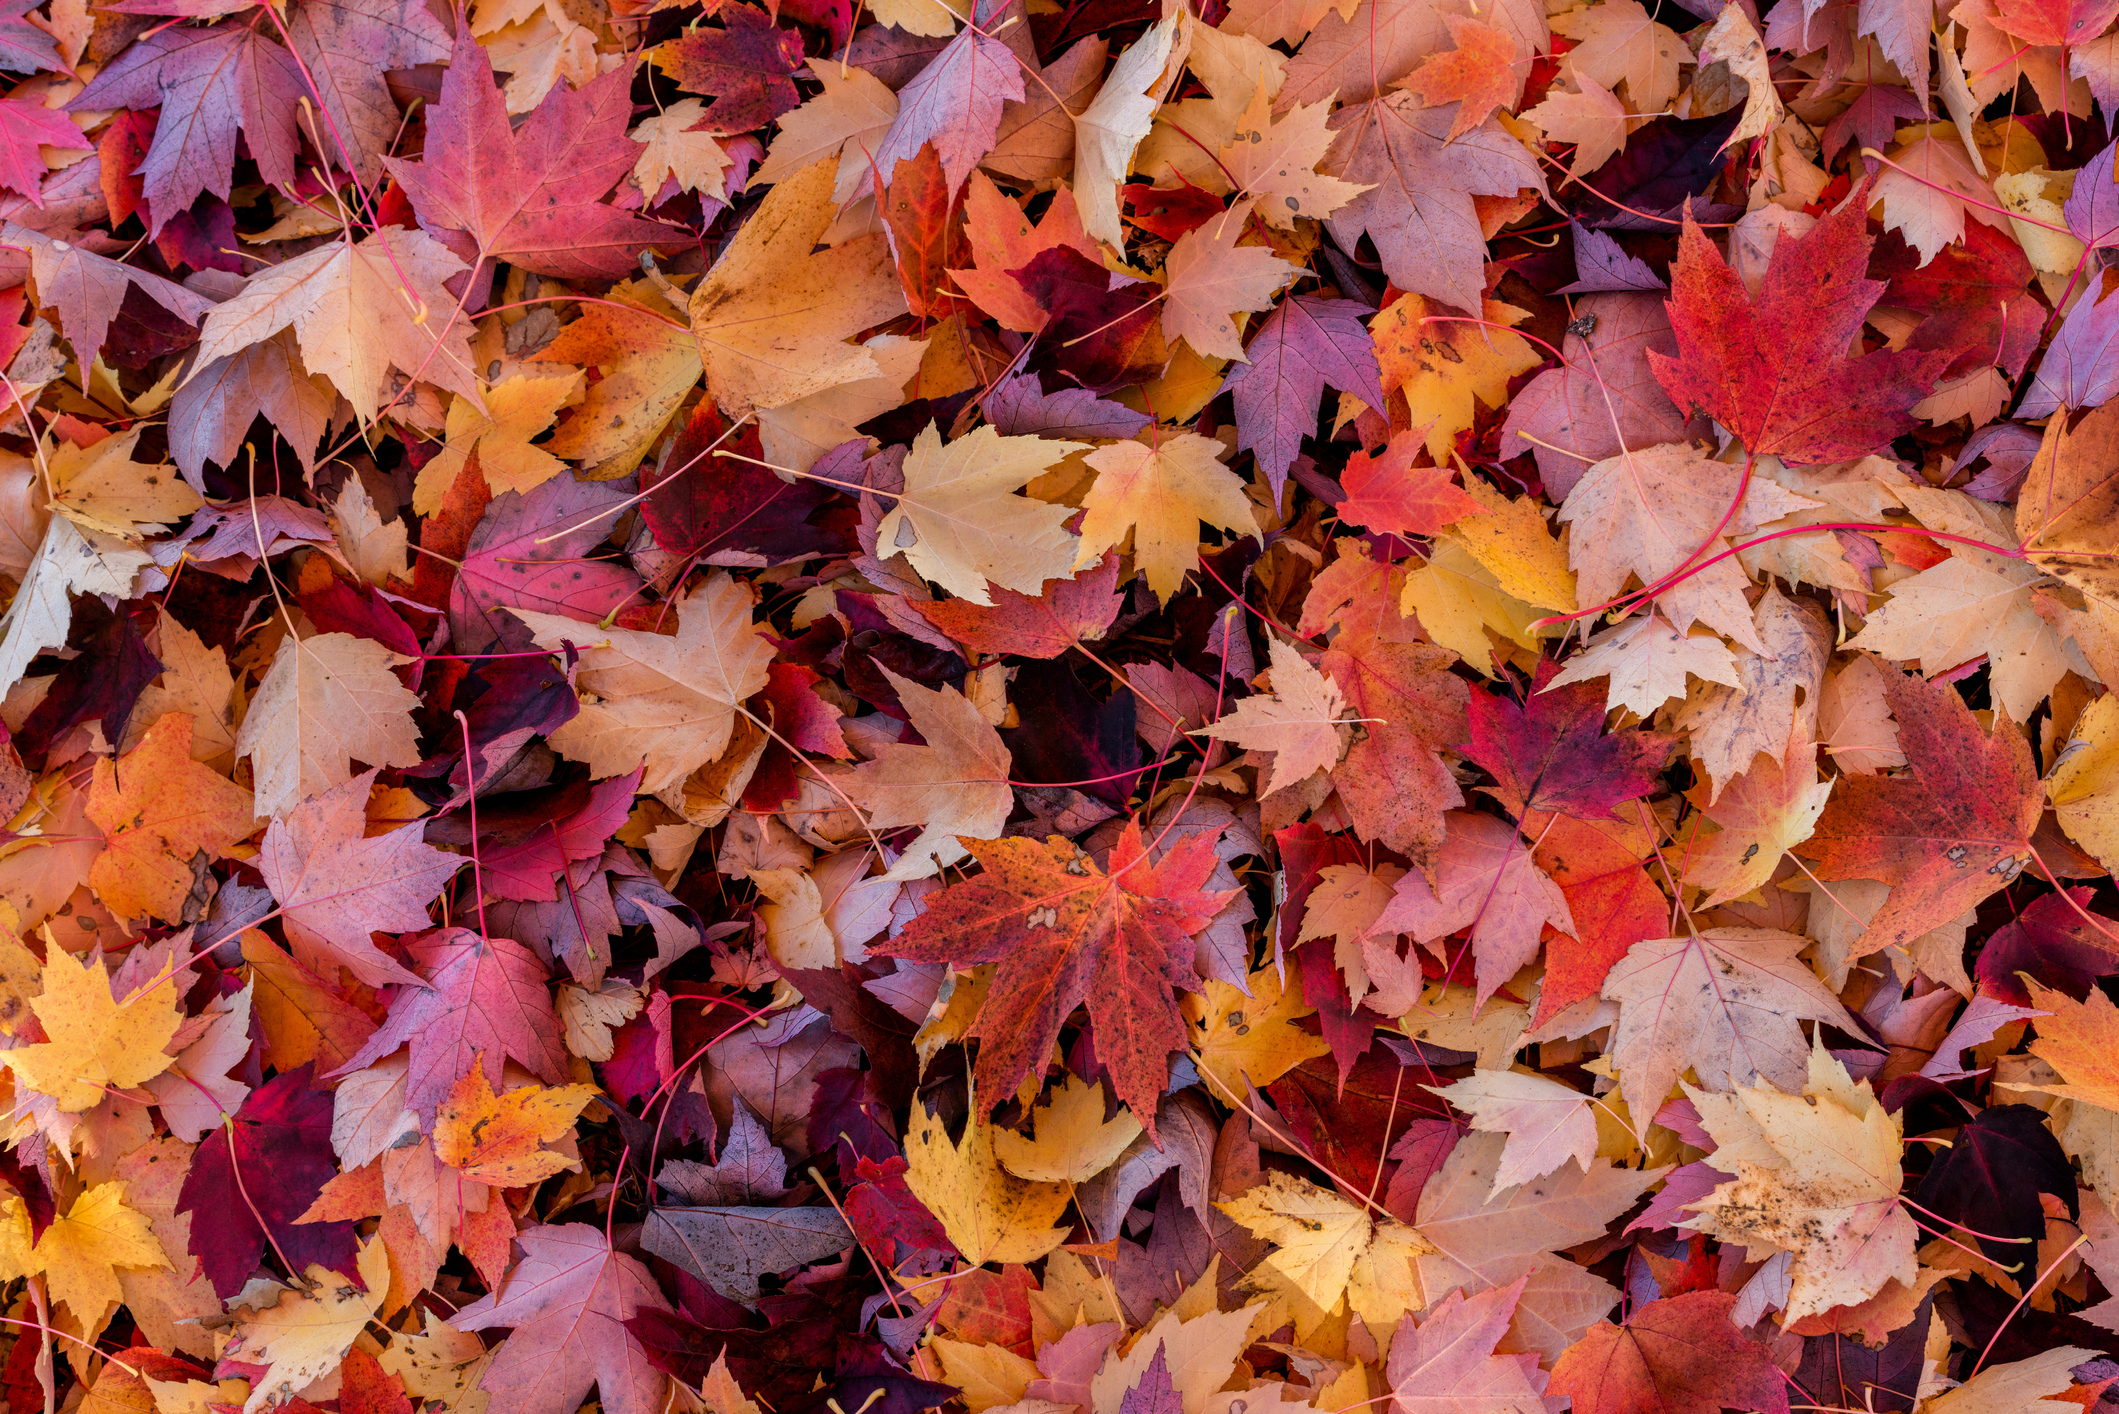 Autumn leaves cover the forest floor (Getty Images)